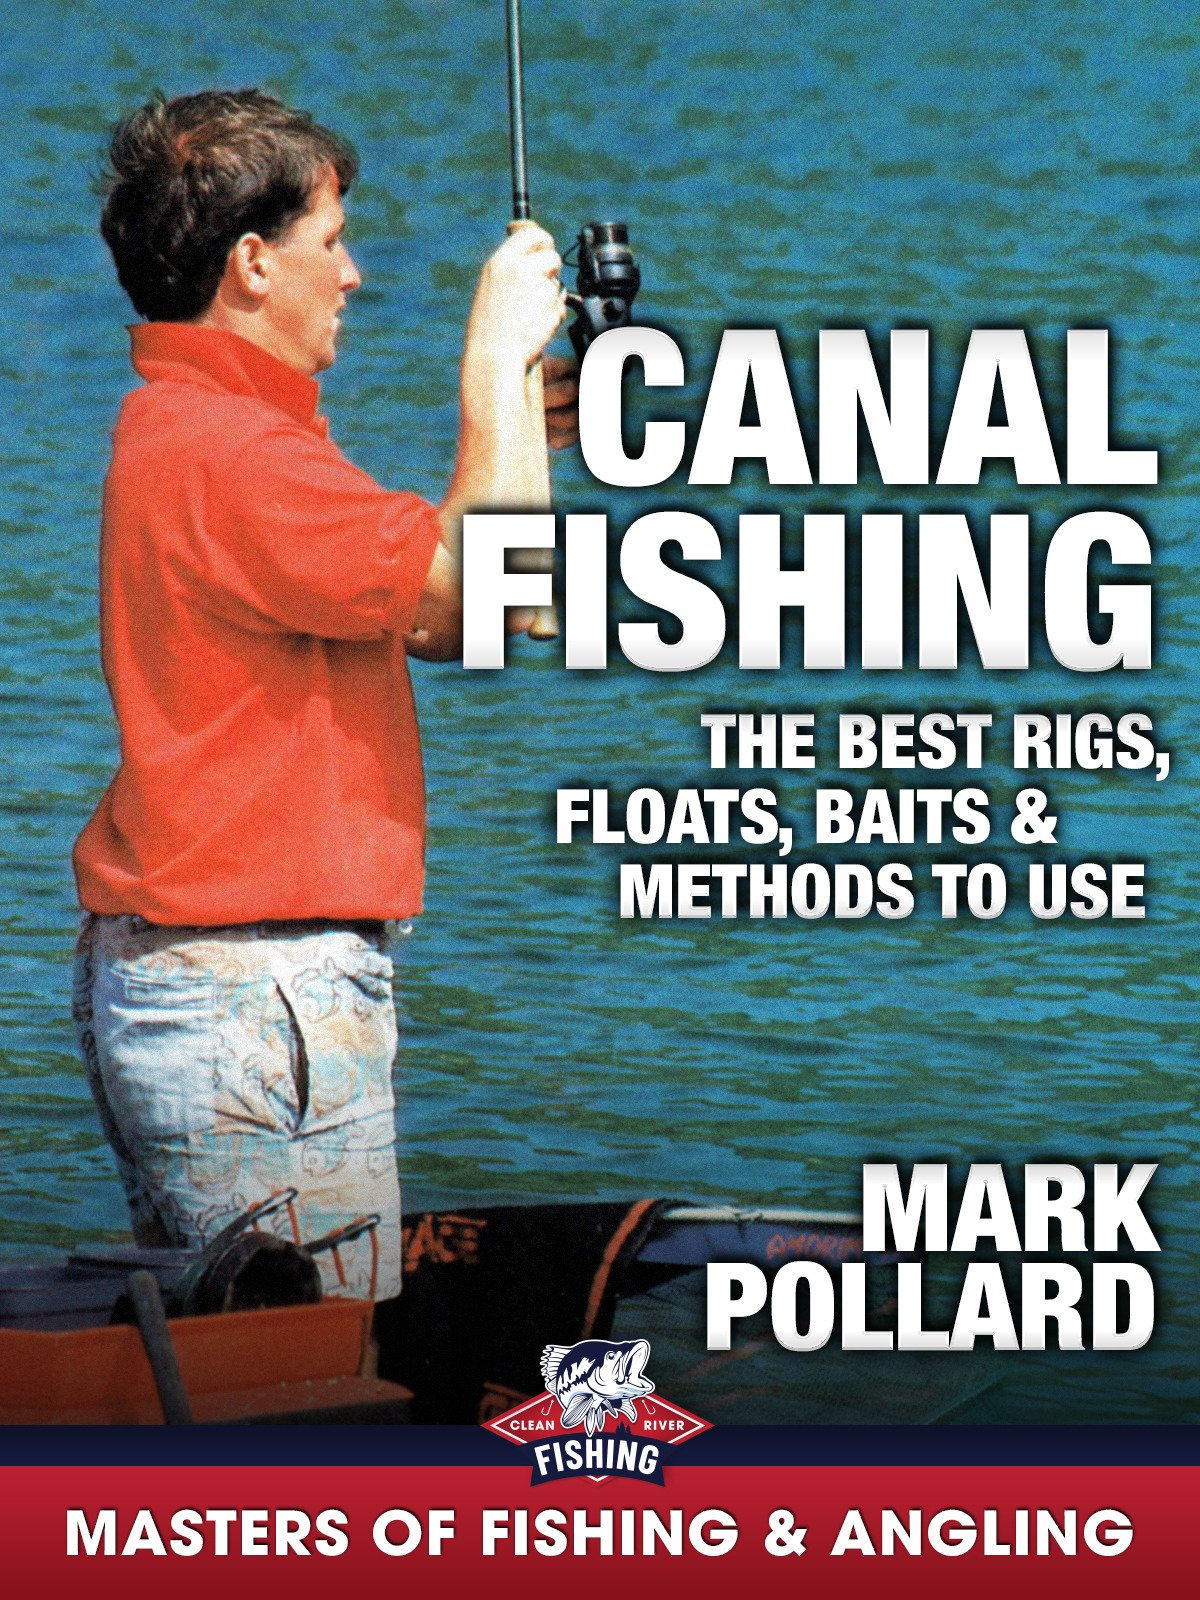 Canal Fishing: The Best Rigs, Floats, Baits & Methods to Use